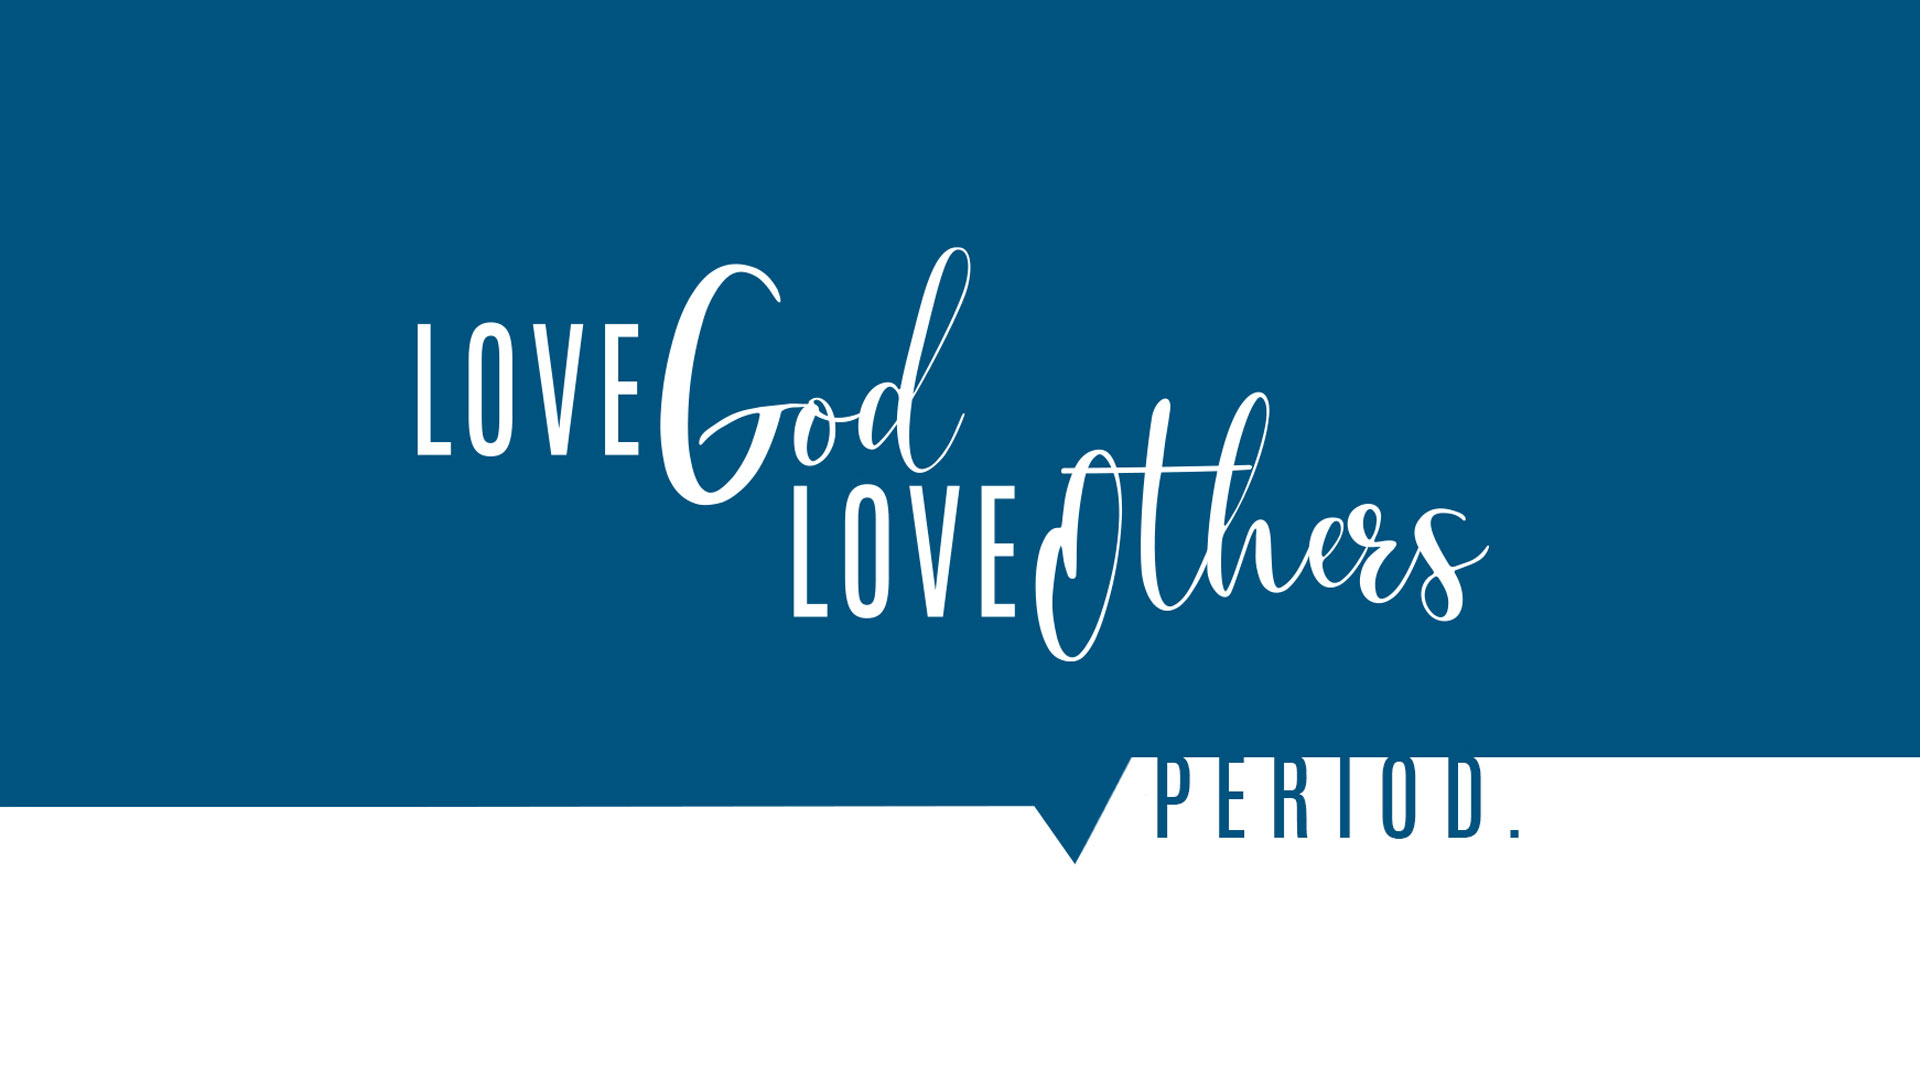 Love God. Love Others. Period.